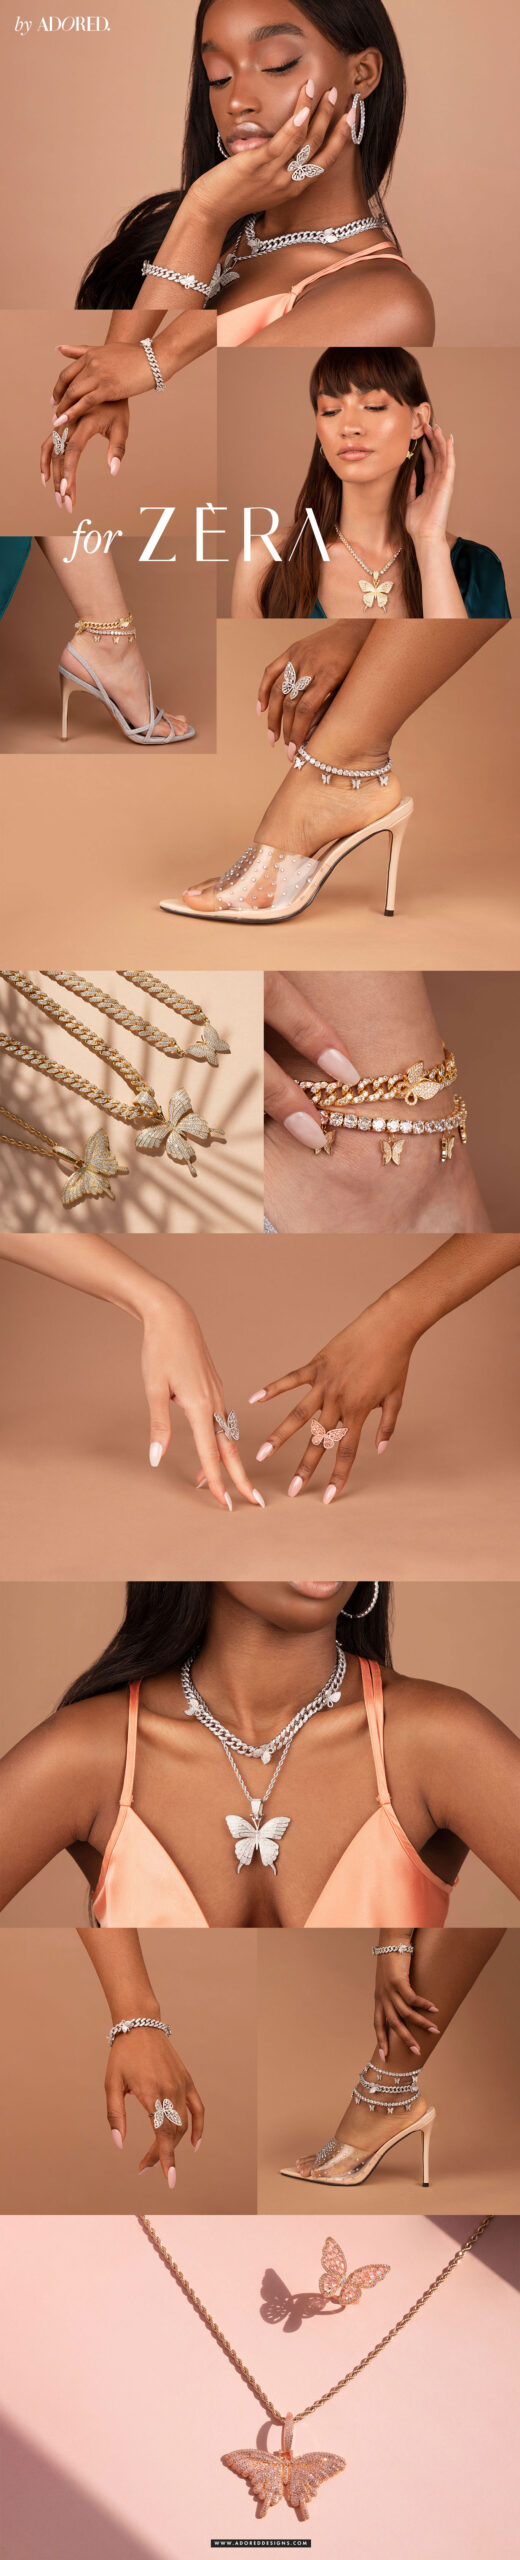 Photoshoot we've done for ZERA  - Luxe Jewellery Brand, to help increase their prices.